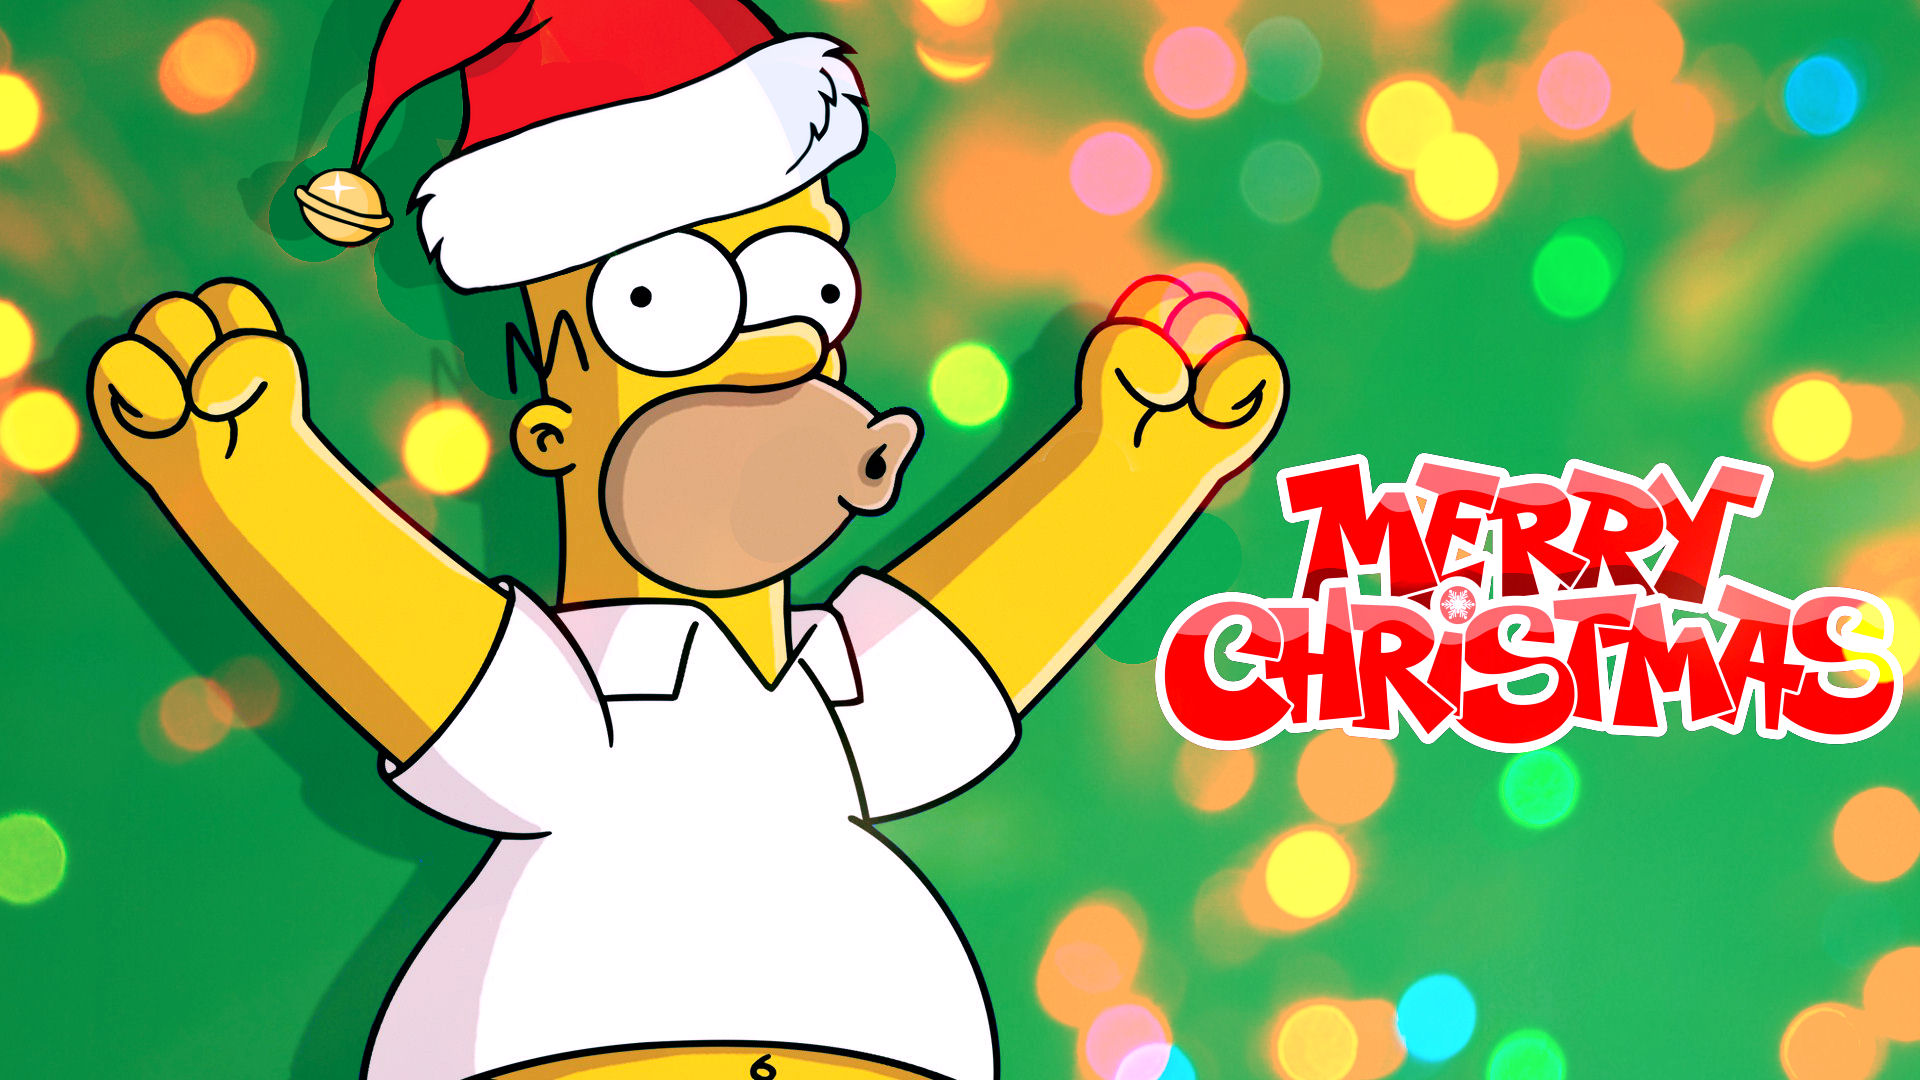 The Simpsons   Homers Merry Christmas Wallpaper by 1920x1080